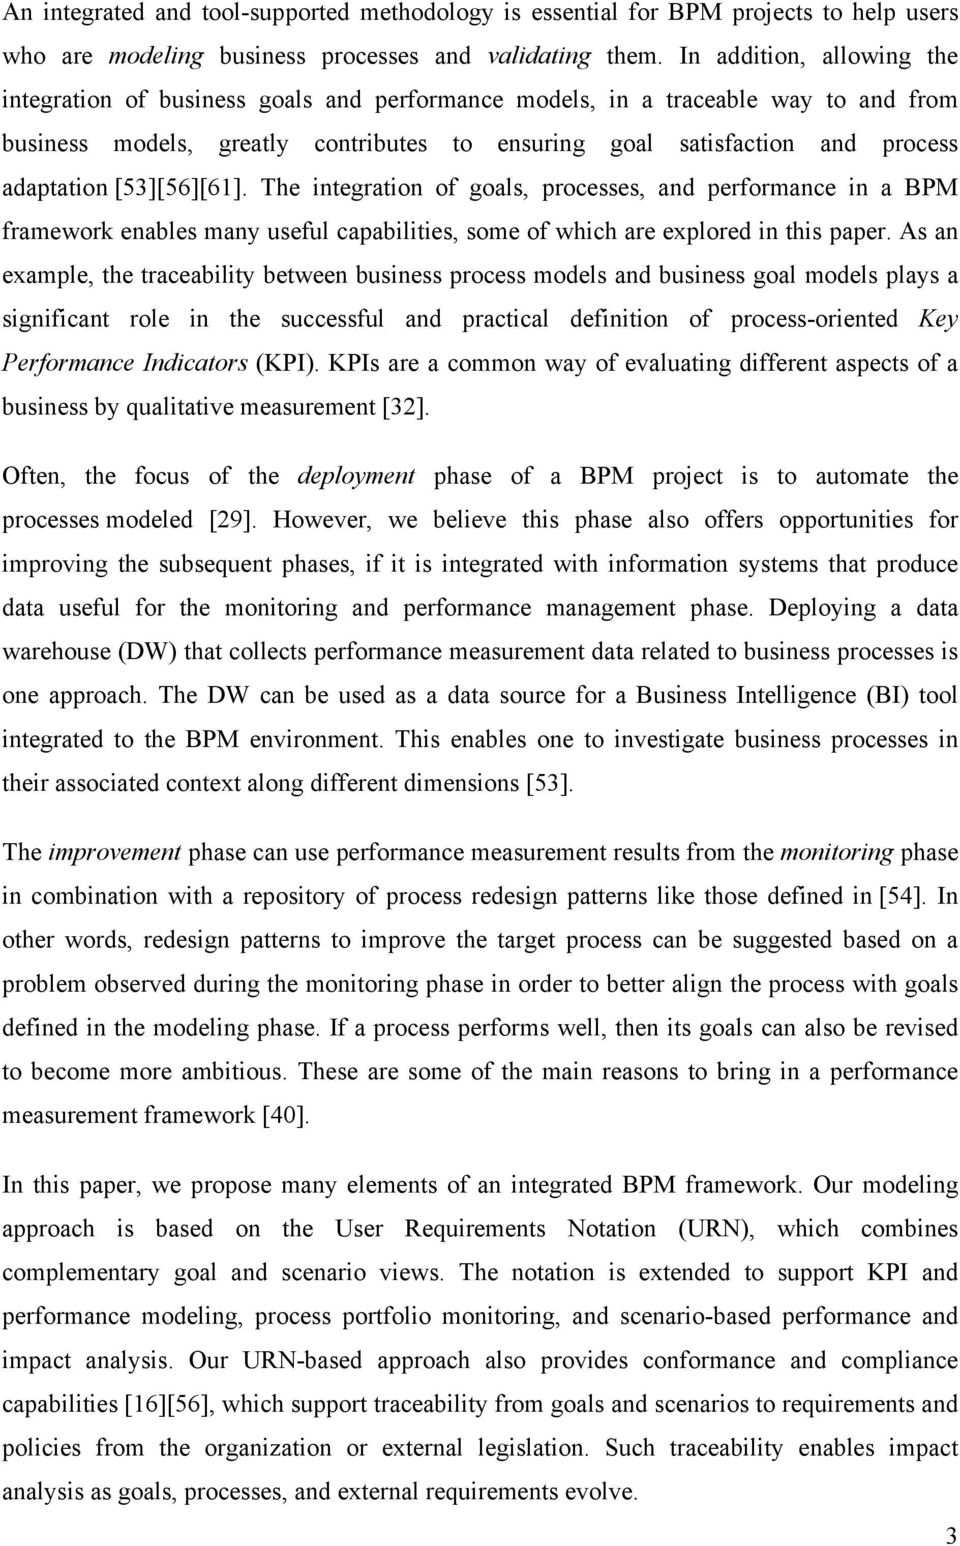 adaptation [53][56][61]. The integration of goals, processes, and performance in a BPM framework enables many useful capabilities, some of which are explored in this paper.